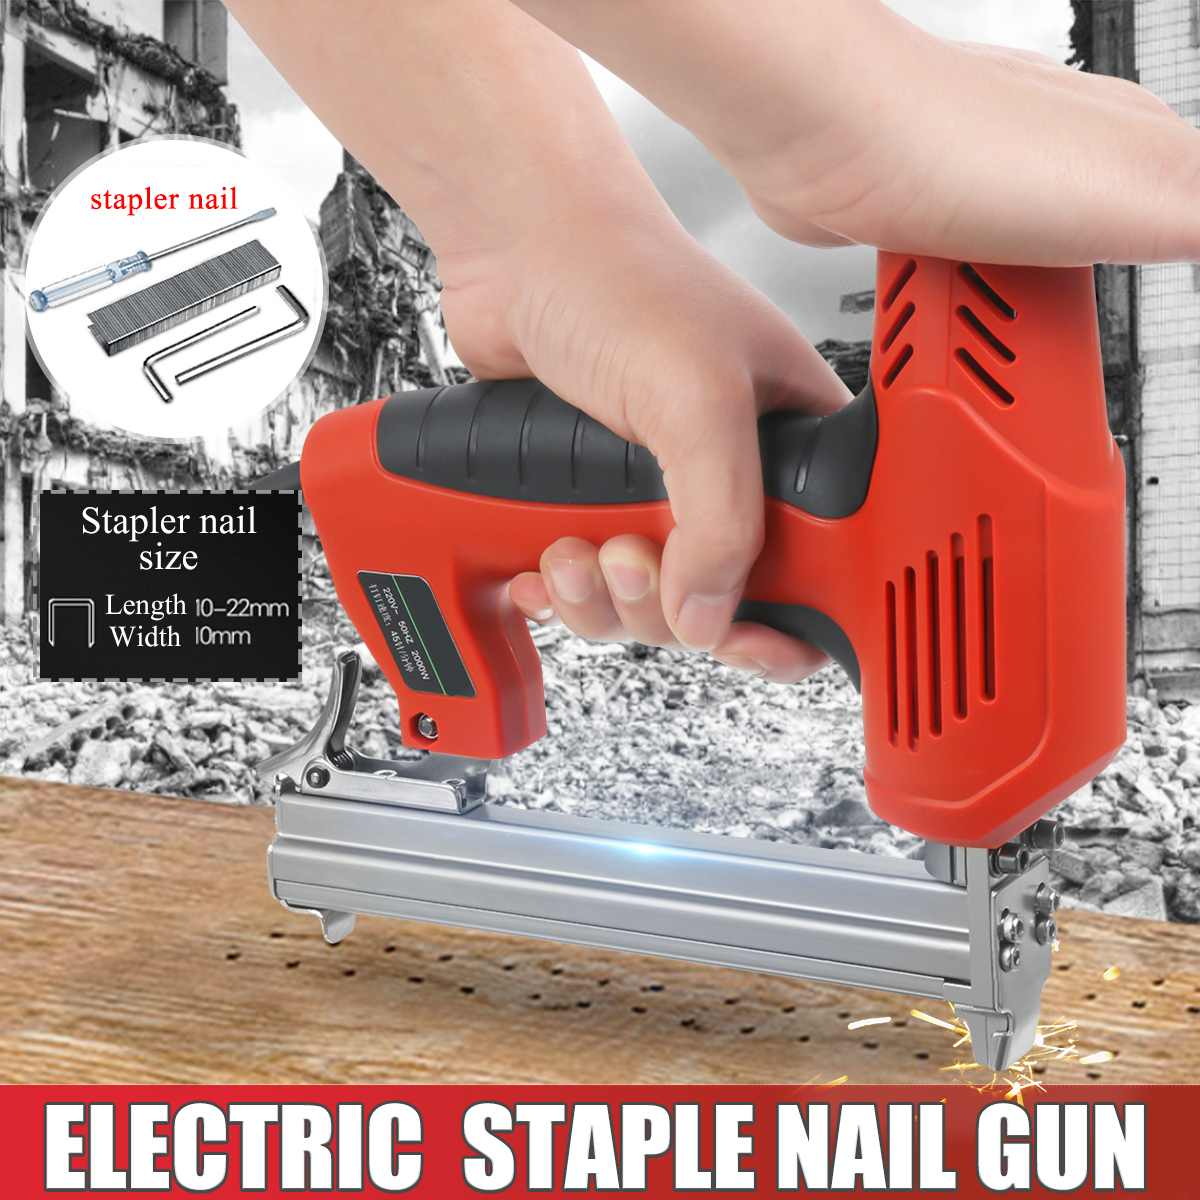 Drillpro Electric Straight Nail Gun 10-22mm 220V 2000W Heavy-Duty Woodworking Tool High Power Electrical Staple Nail